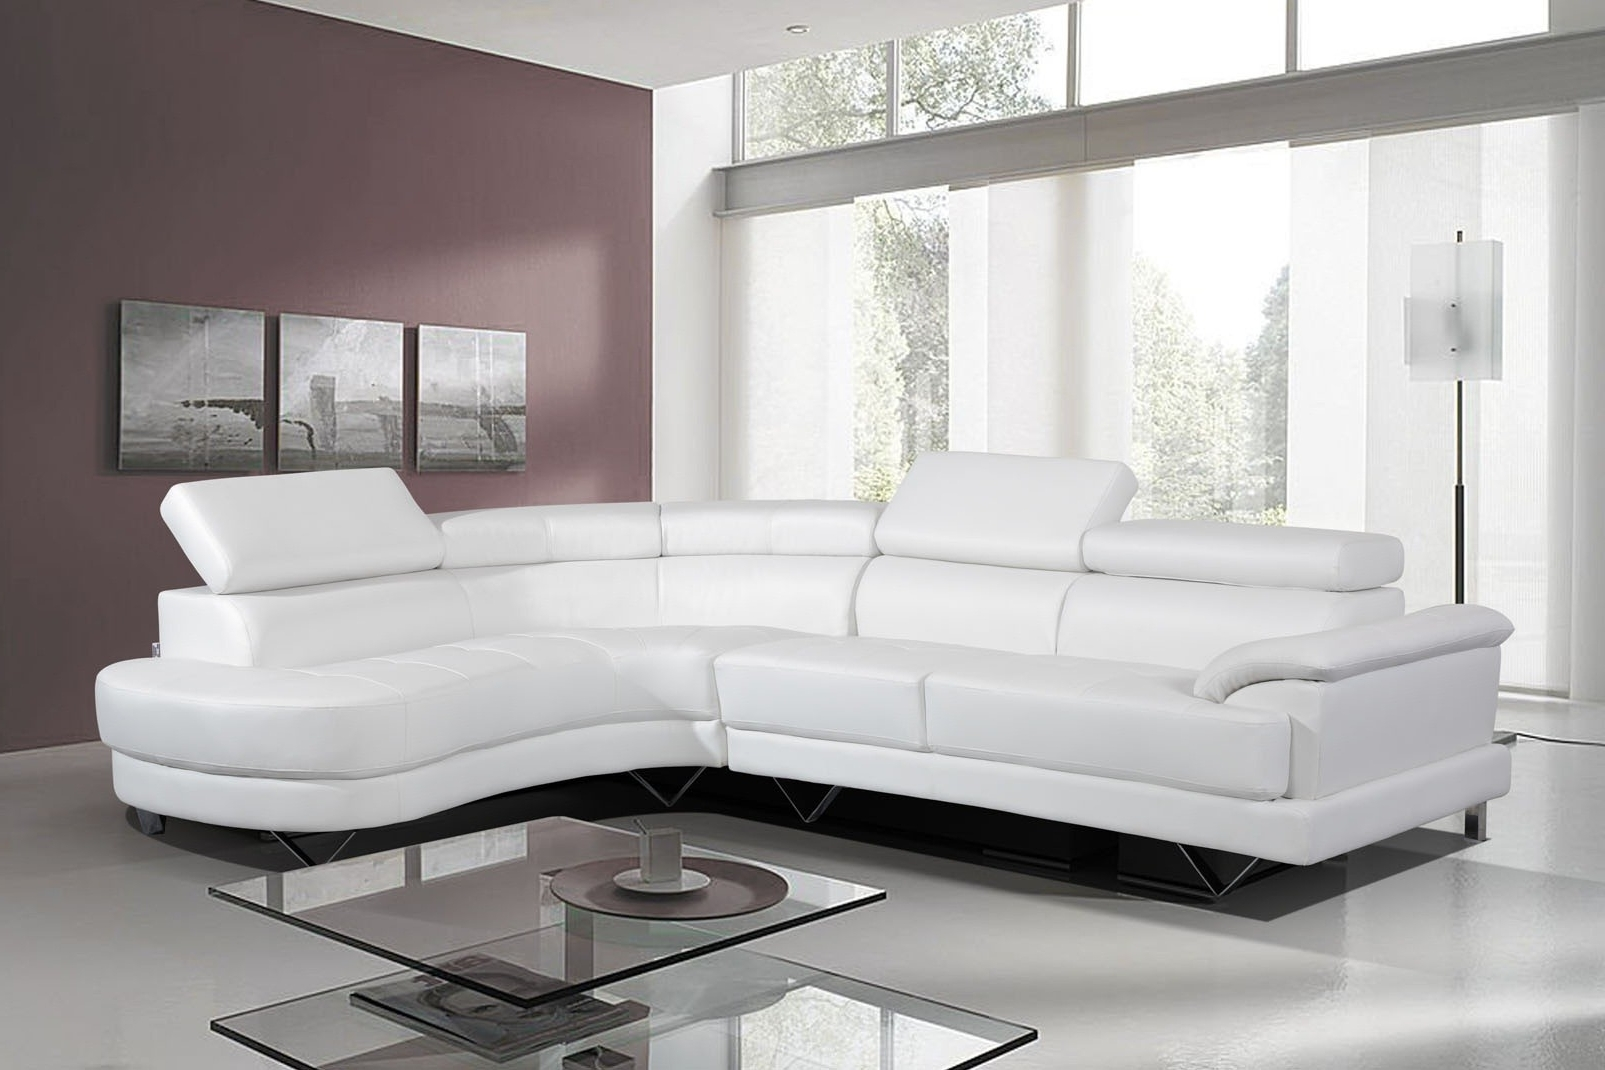 Leather Sofa Corner – Home And Textiles In Latest Leather Corner Sofas (View 12 of 15)